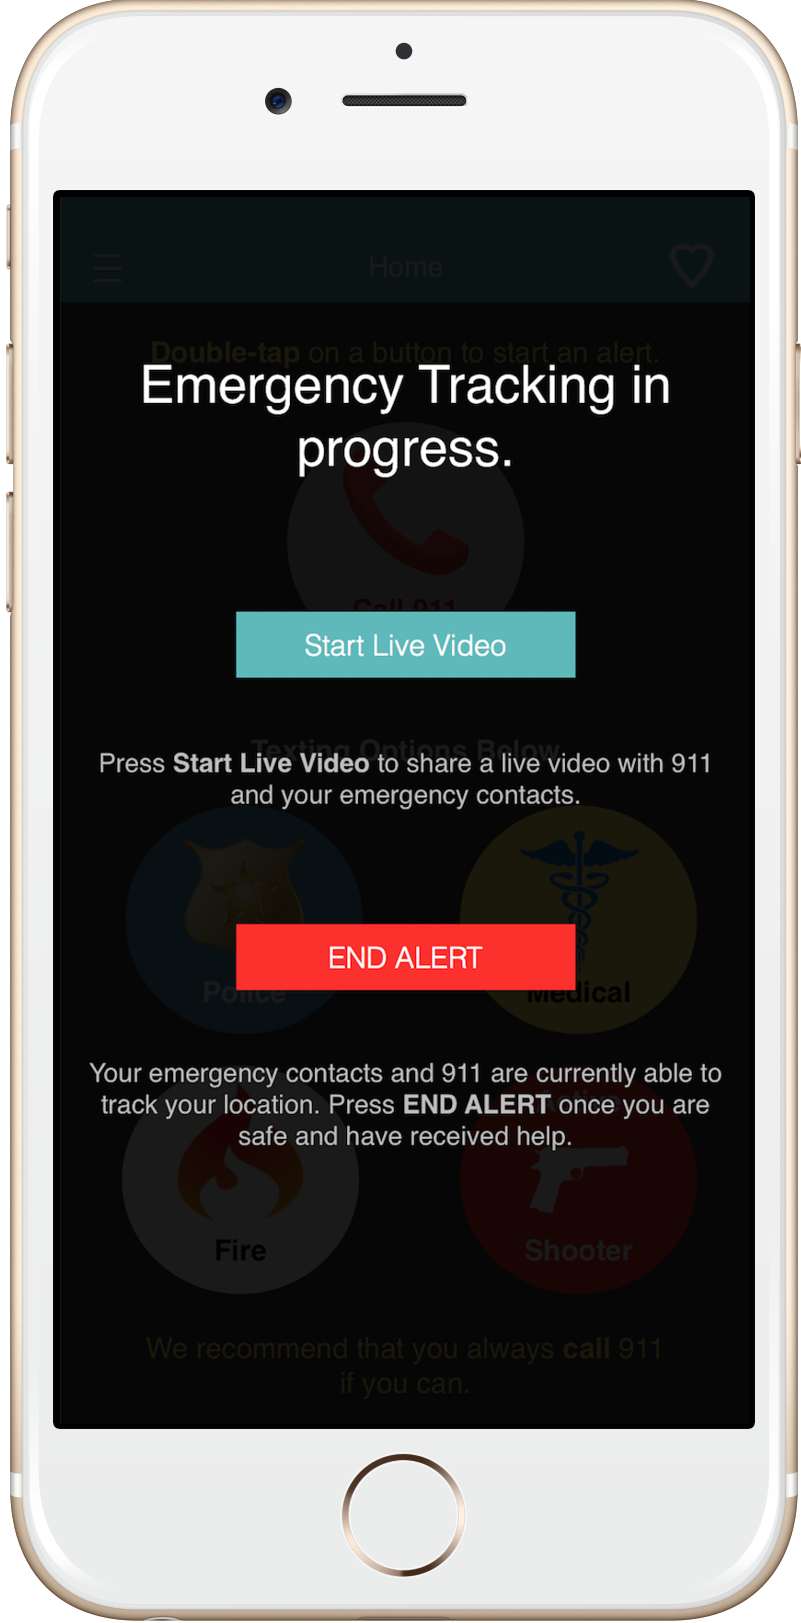 Press Start Live Video to share a live video with 9-1-1 or press End Alert to end the emergency tracking.